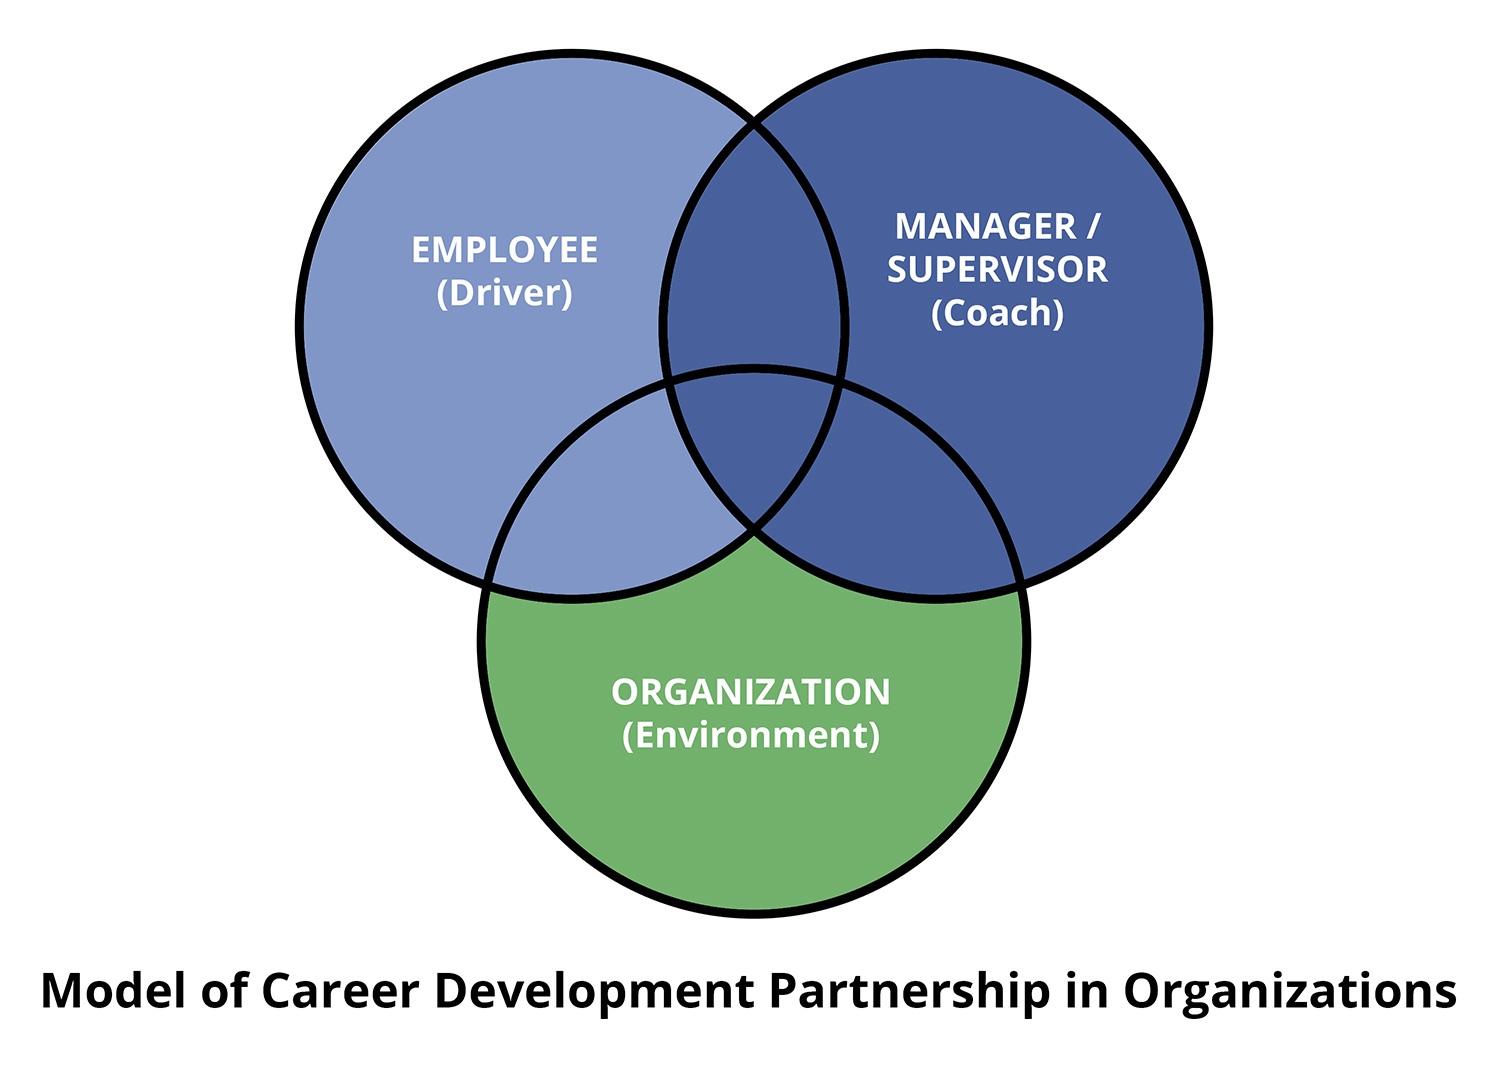 Model of Career Development Partnership in Organizations